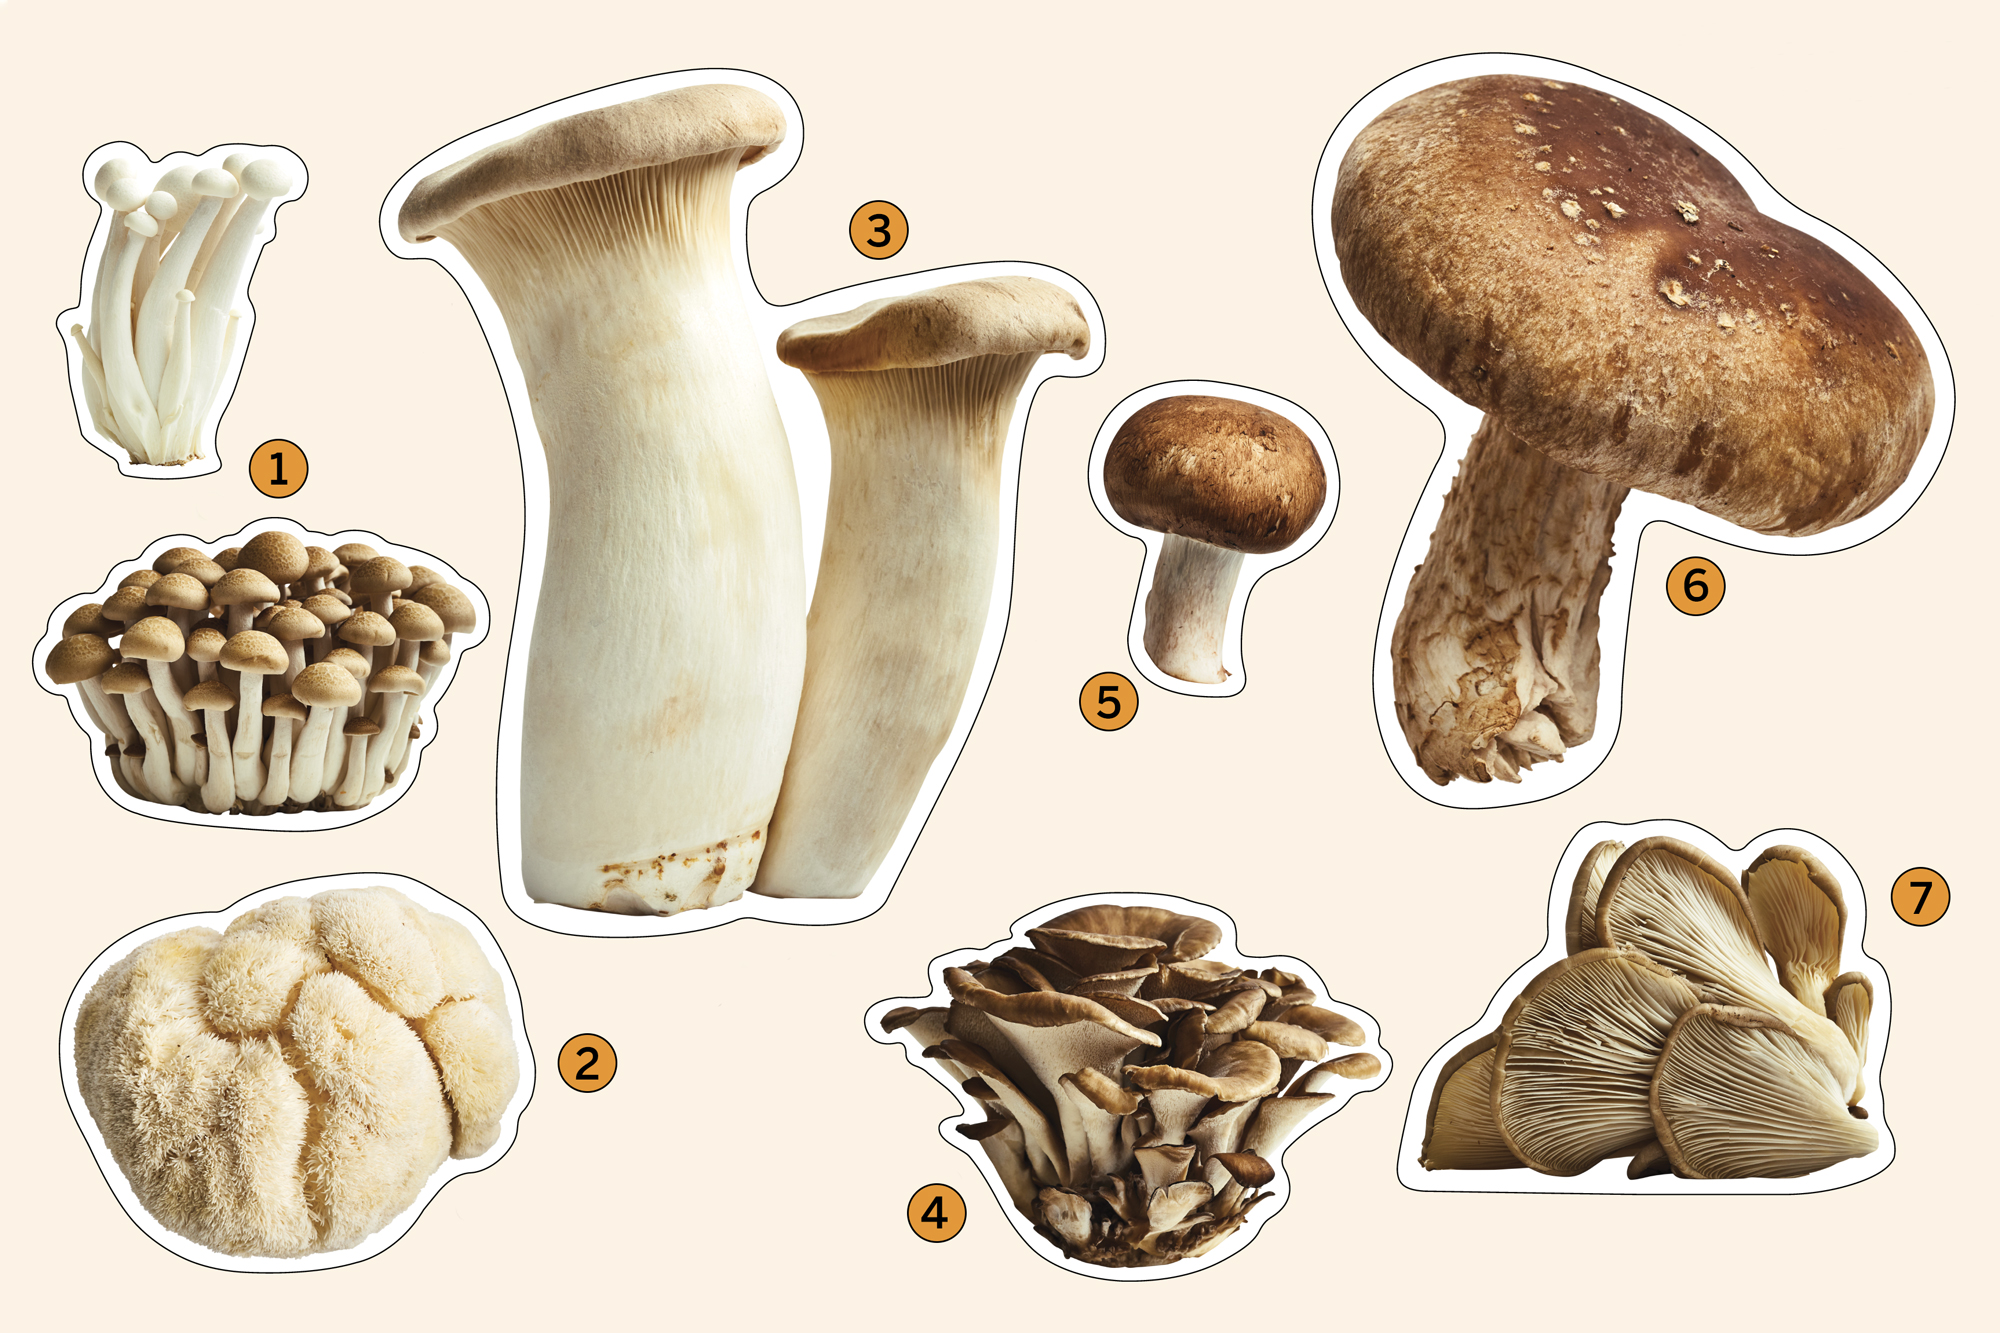 images of different types of mushrooms